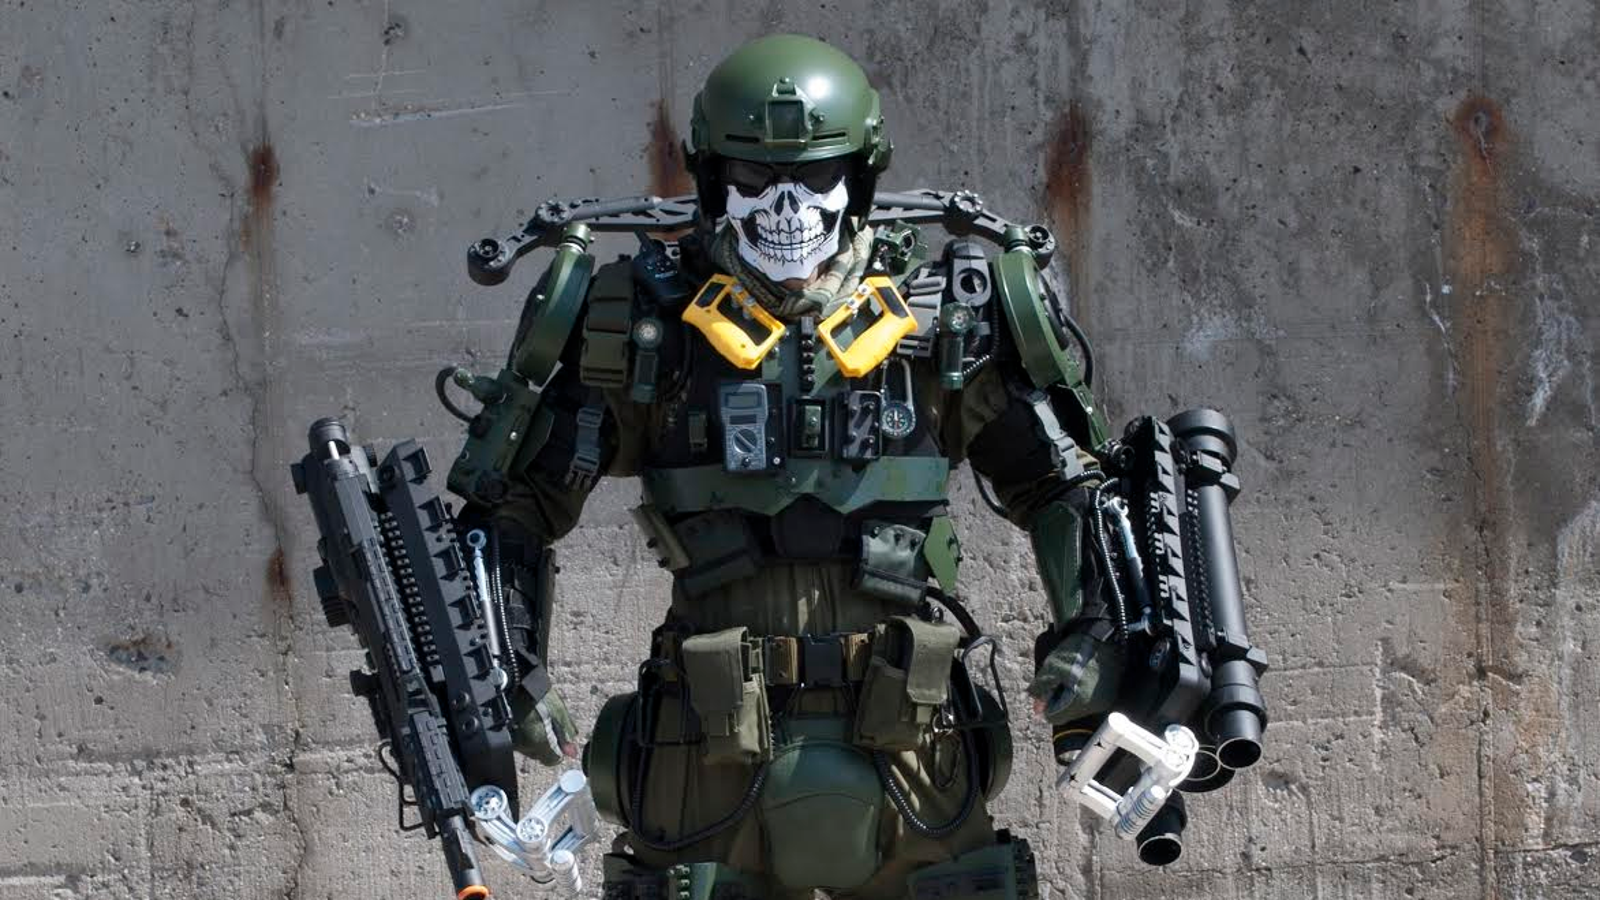 This Badass ExoSuit From Edge Of Tomorrow Is Constructed From Junk